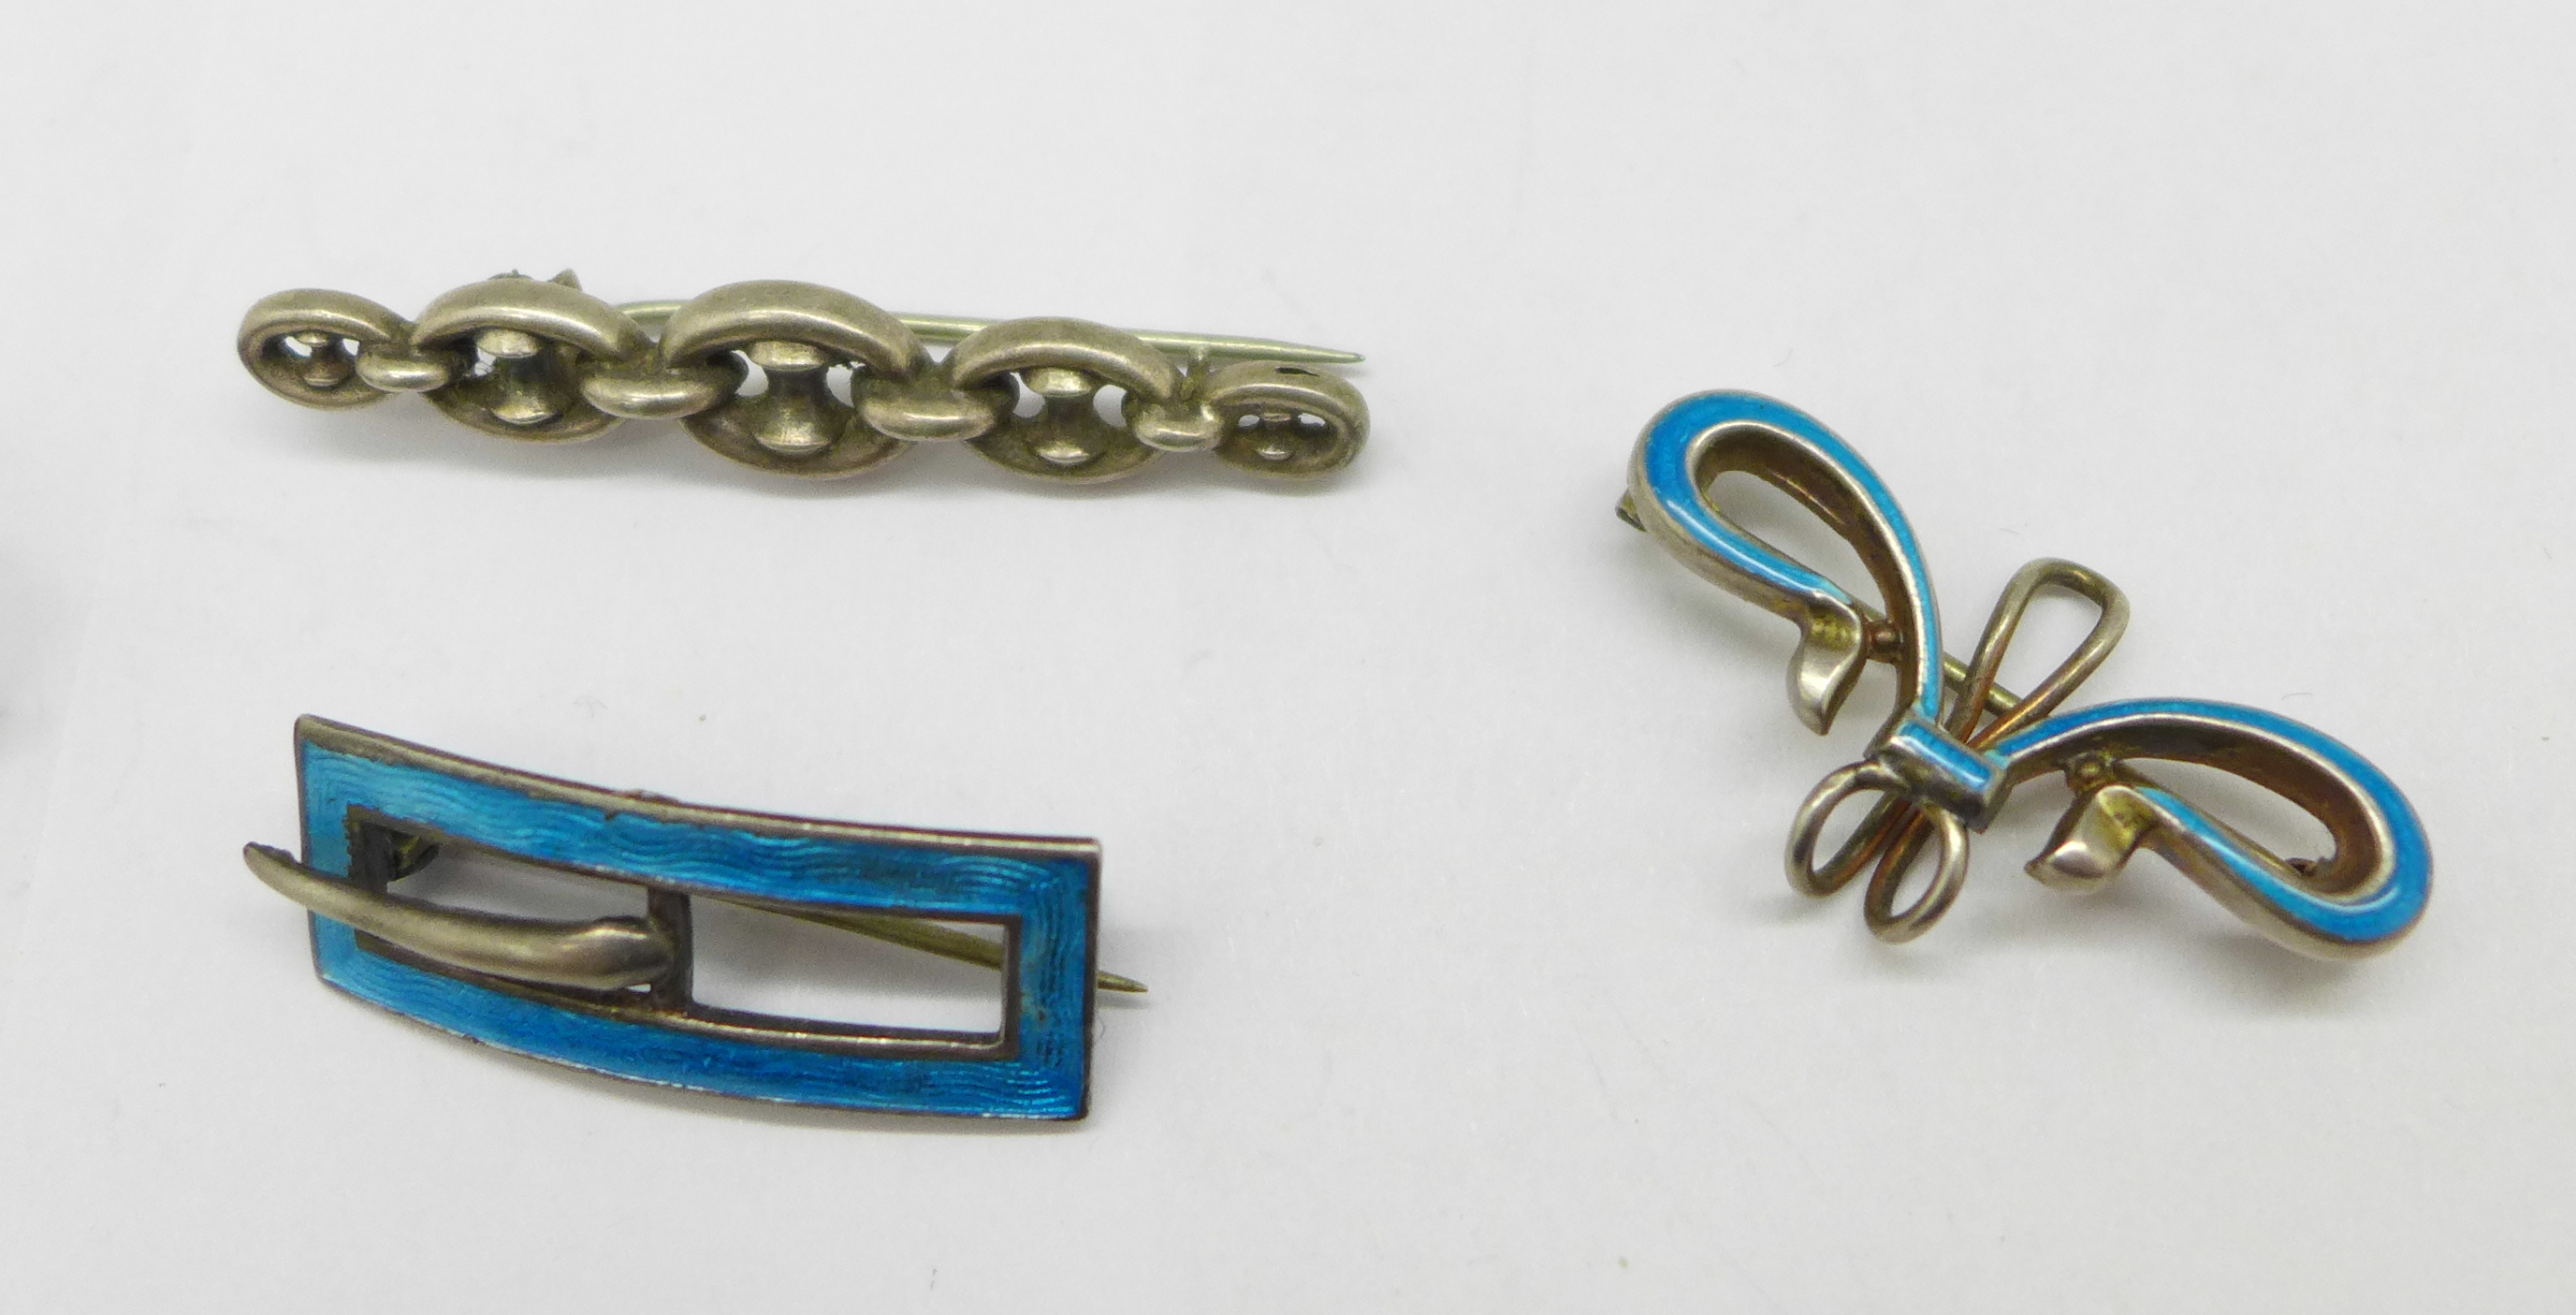 A silver and enamel Charles Horner brooch in the form of a buckle, Chester 1912, a silver and - Image 2 of 3